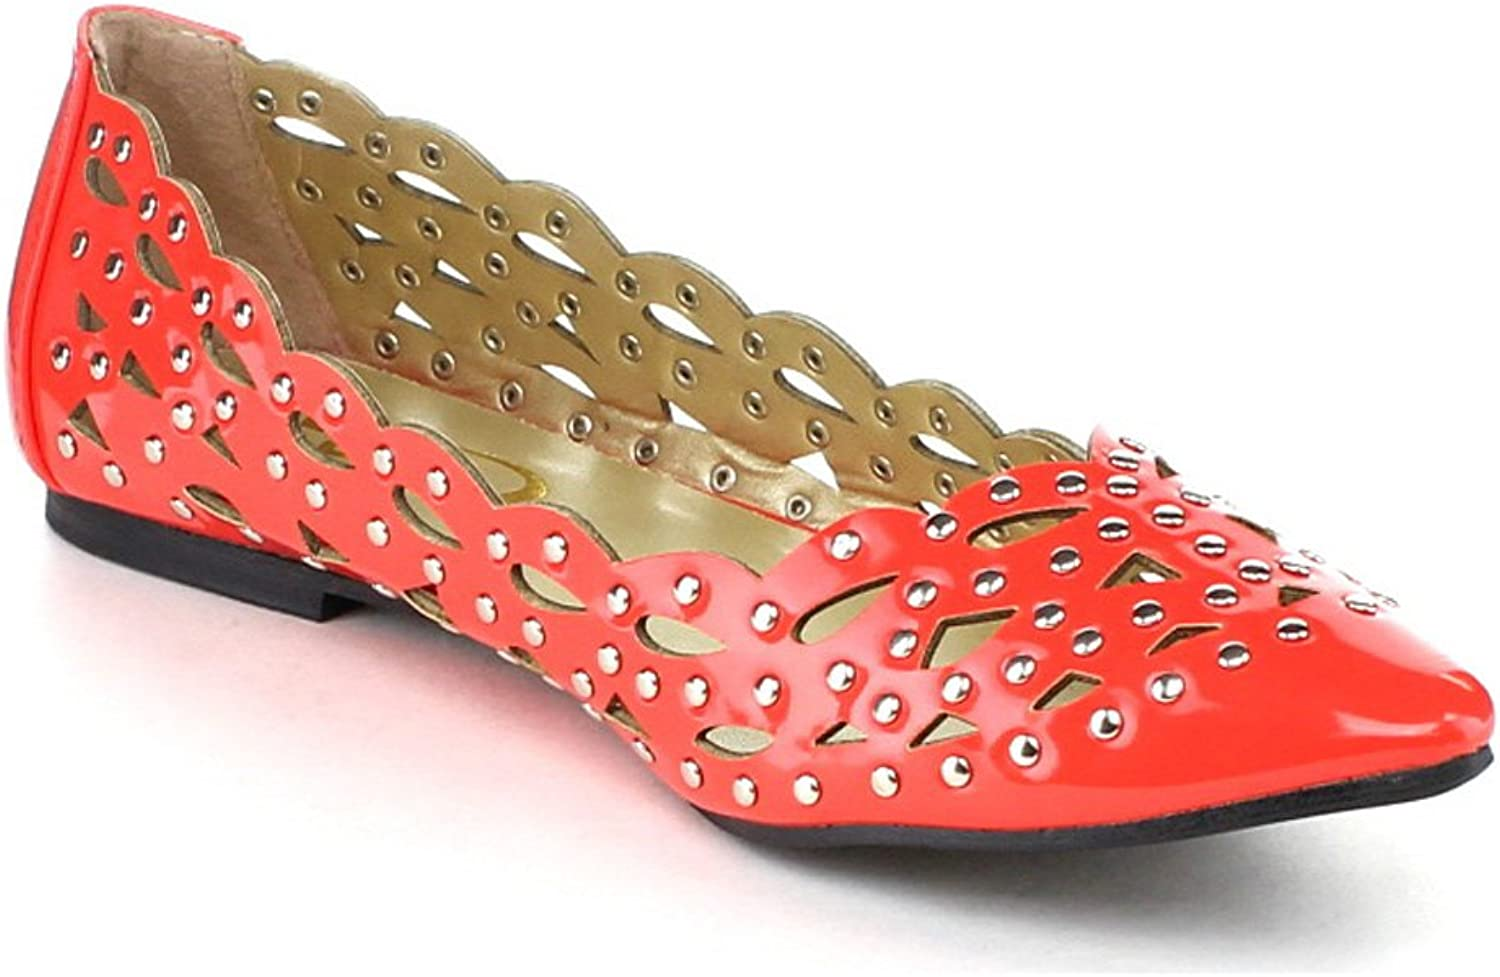 Yoki ABBEY Women's Hot Cut Out Metal Studs Ballet Flat Casual shoes, color RED, Size 9